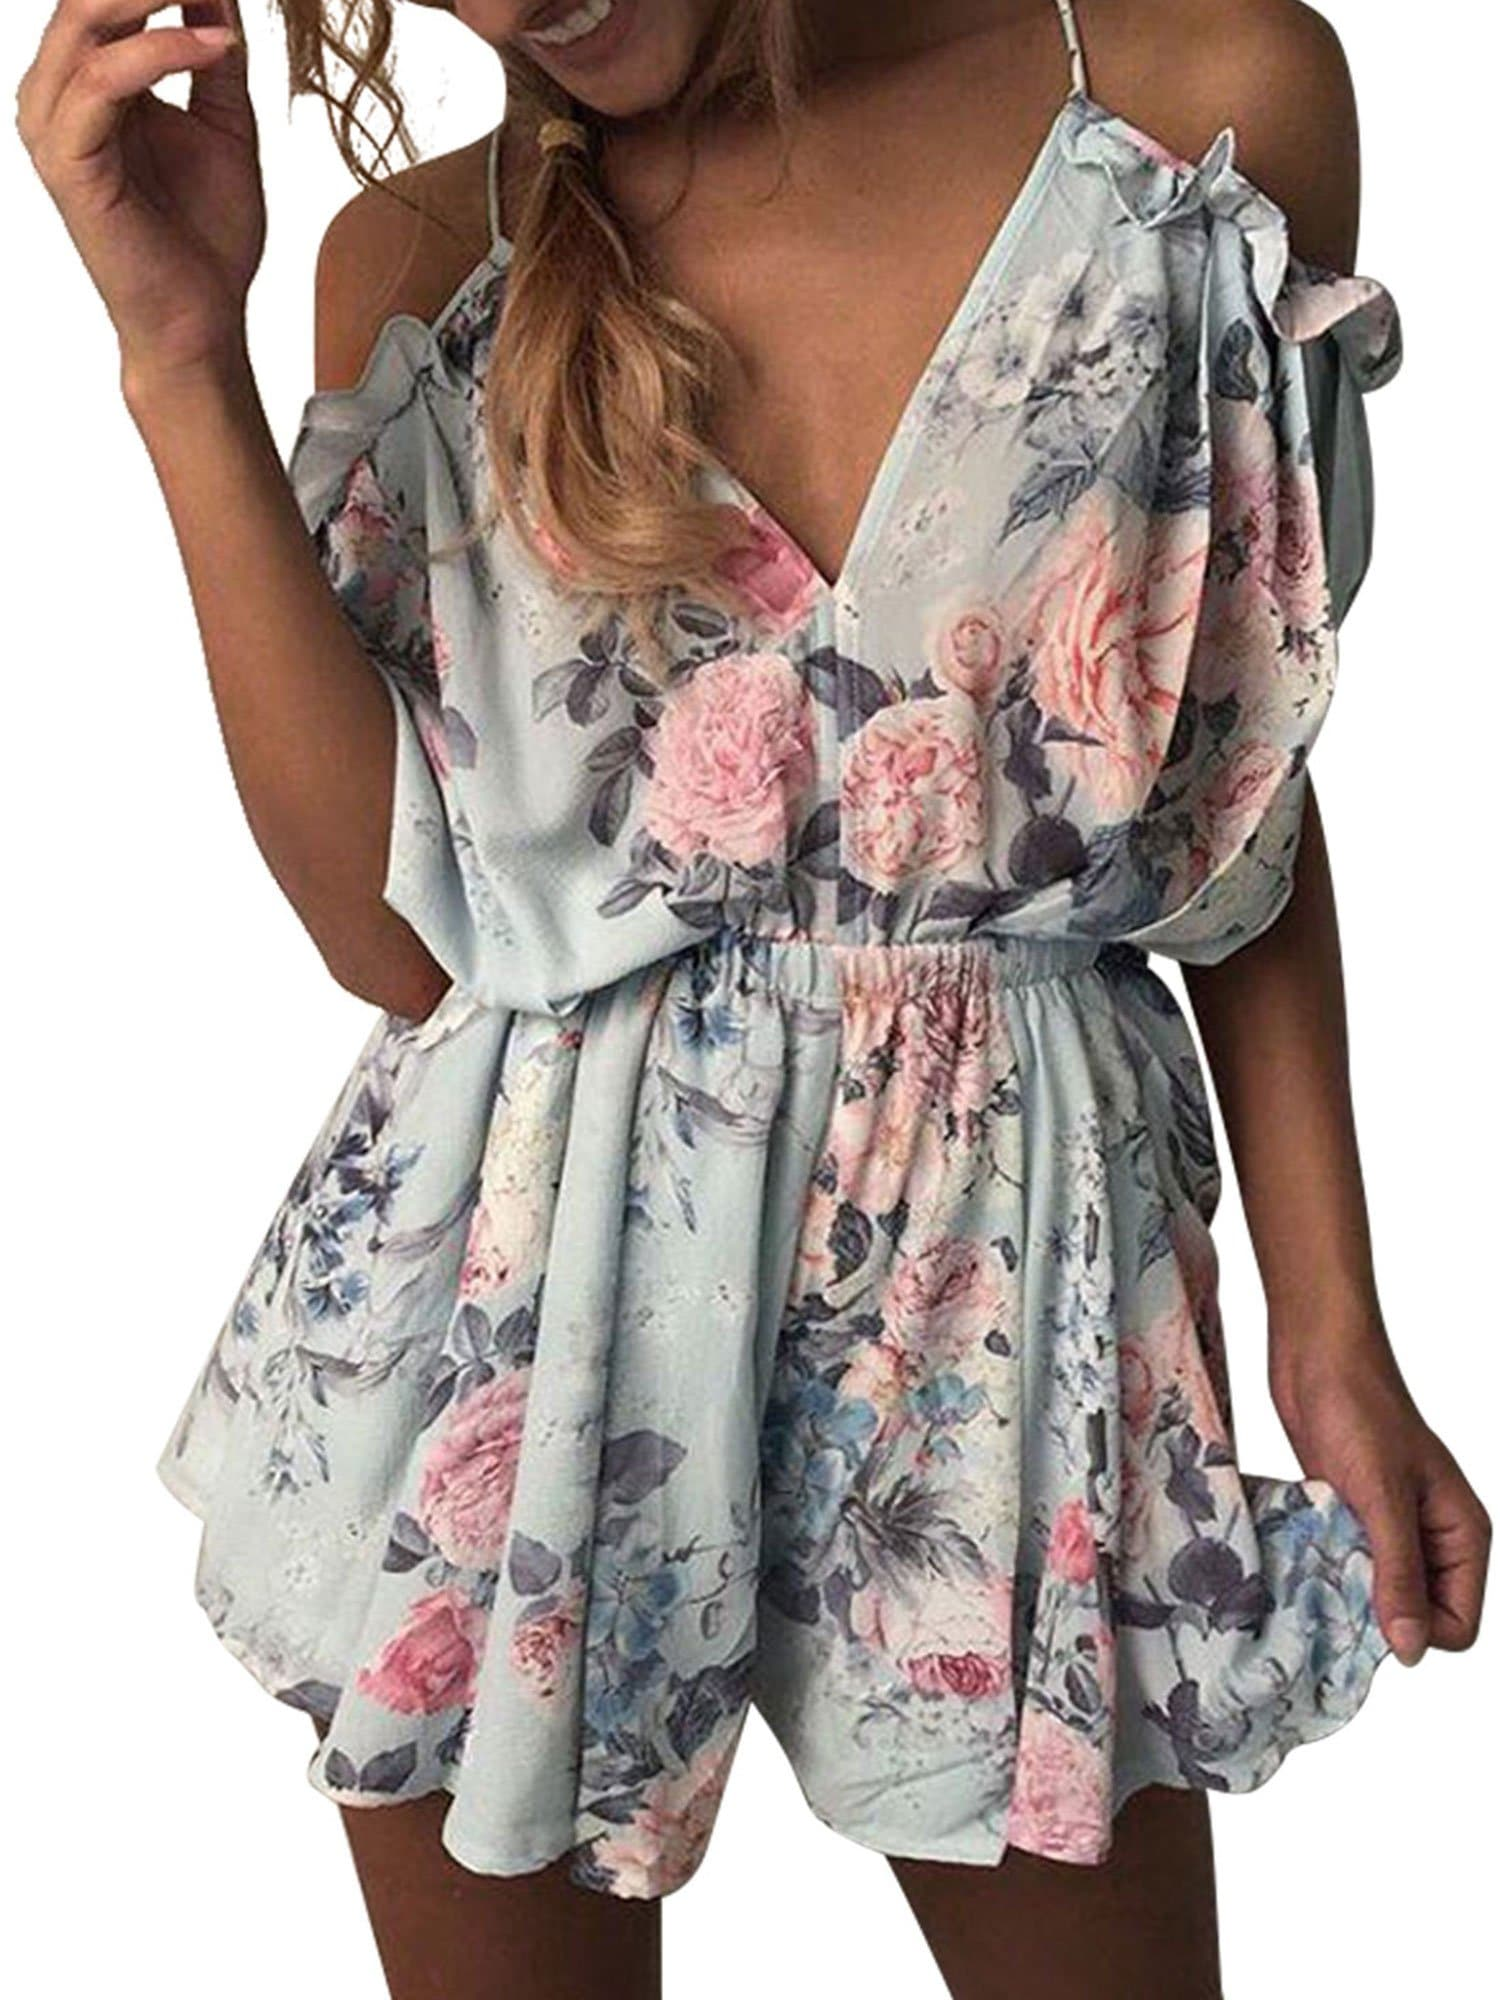 Backless Floral Spaghetti Romper - FLJ CORPORATIONS